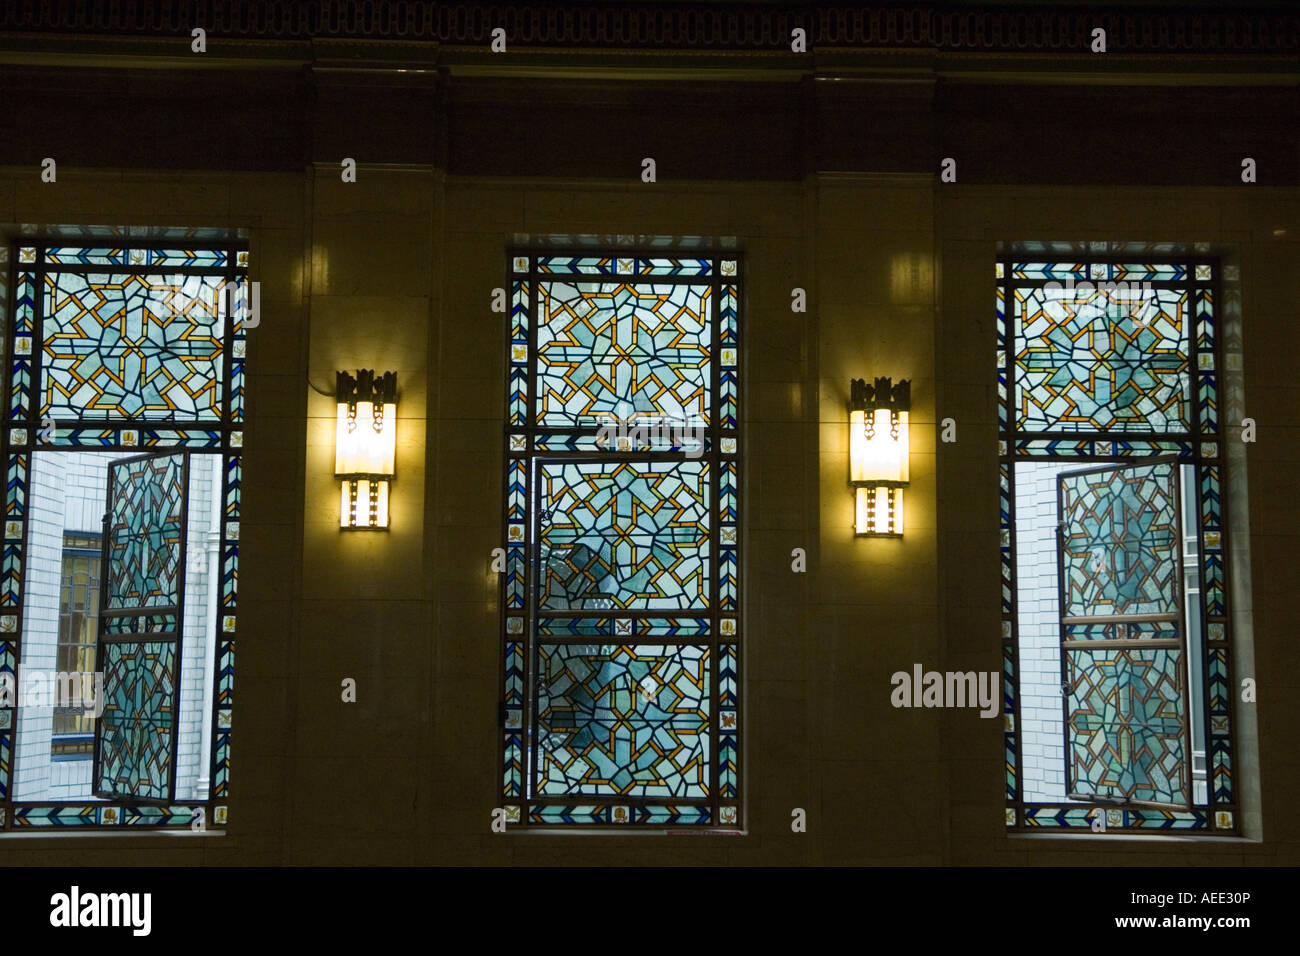 art deco interior, freemasons' hall, london stock photo, royalty